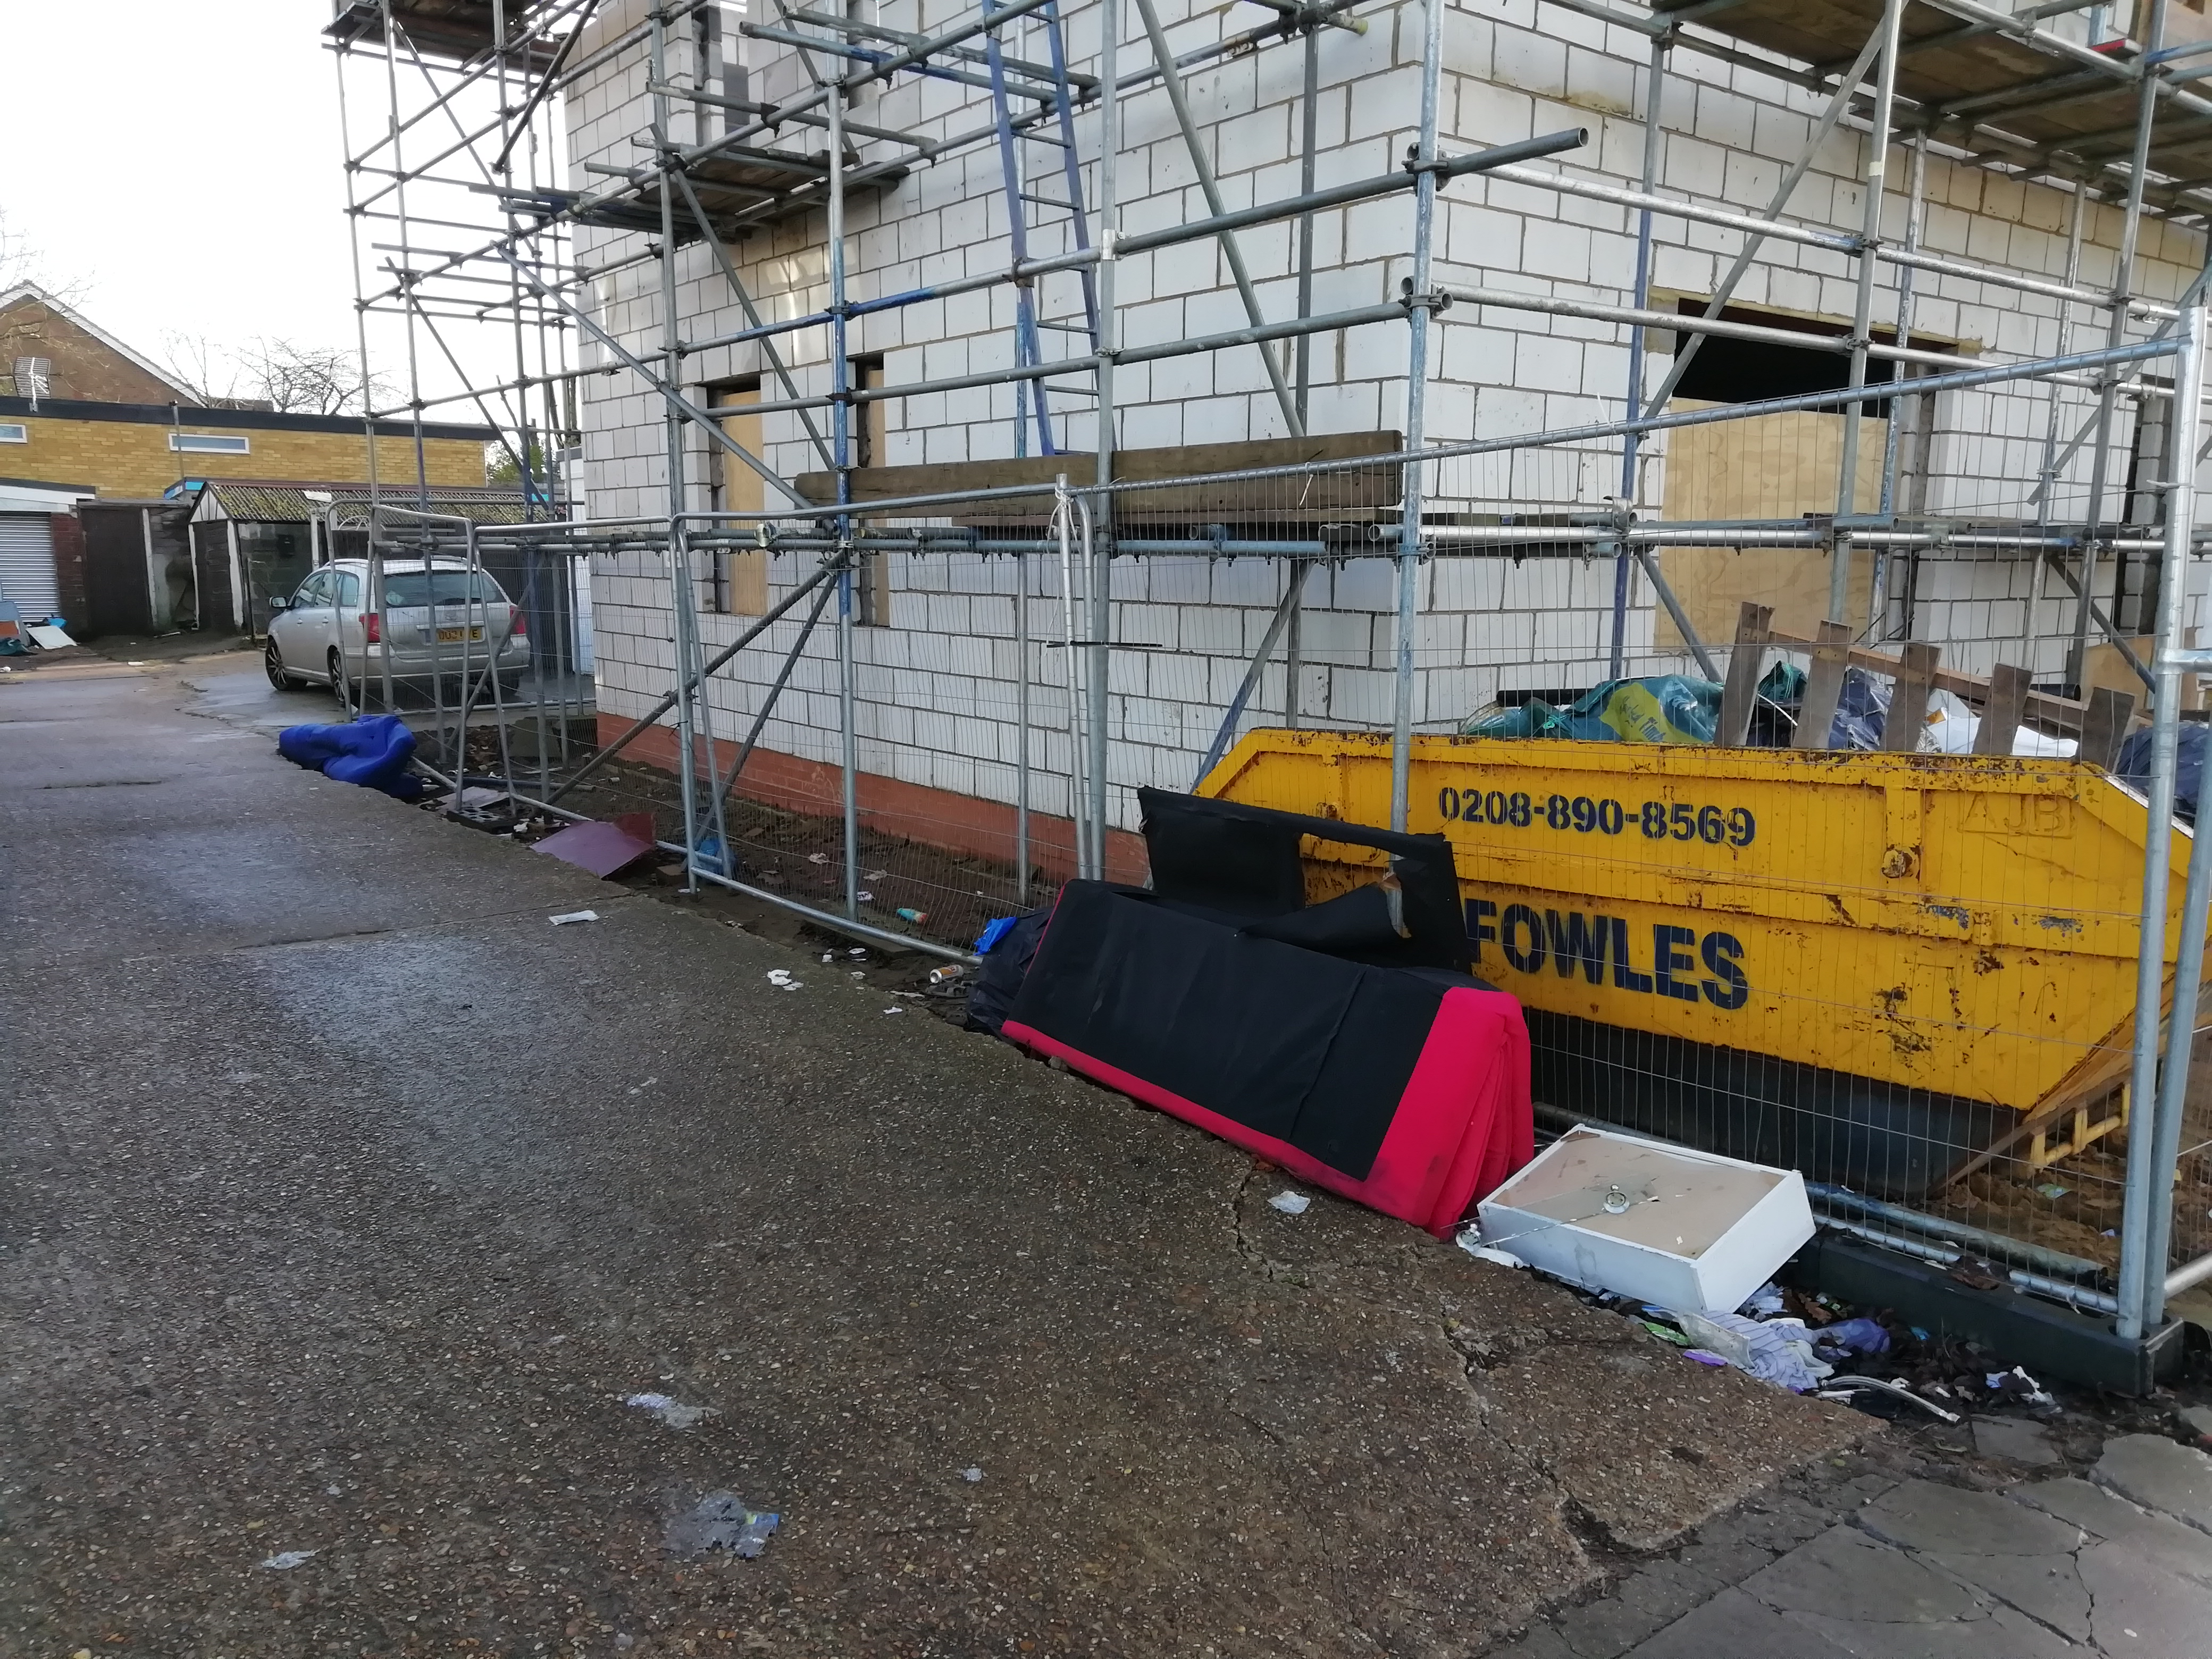 Ongoing building work at 310 Nelson Road